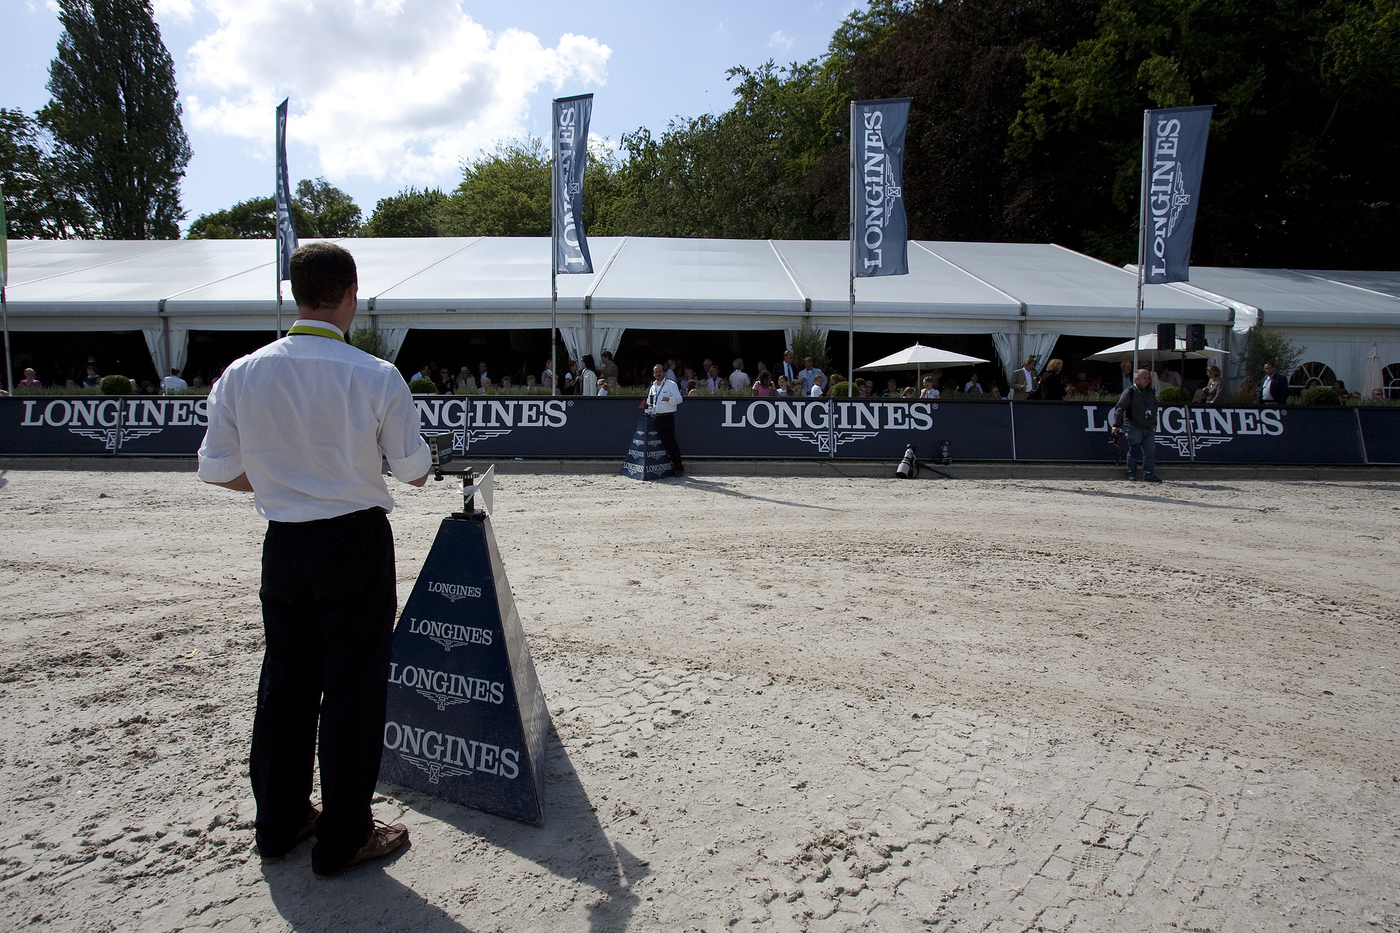 Longines Show Jumping Event: The CHIO Rotterdam 4